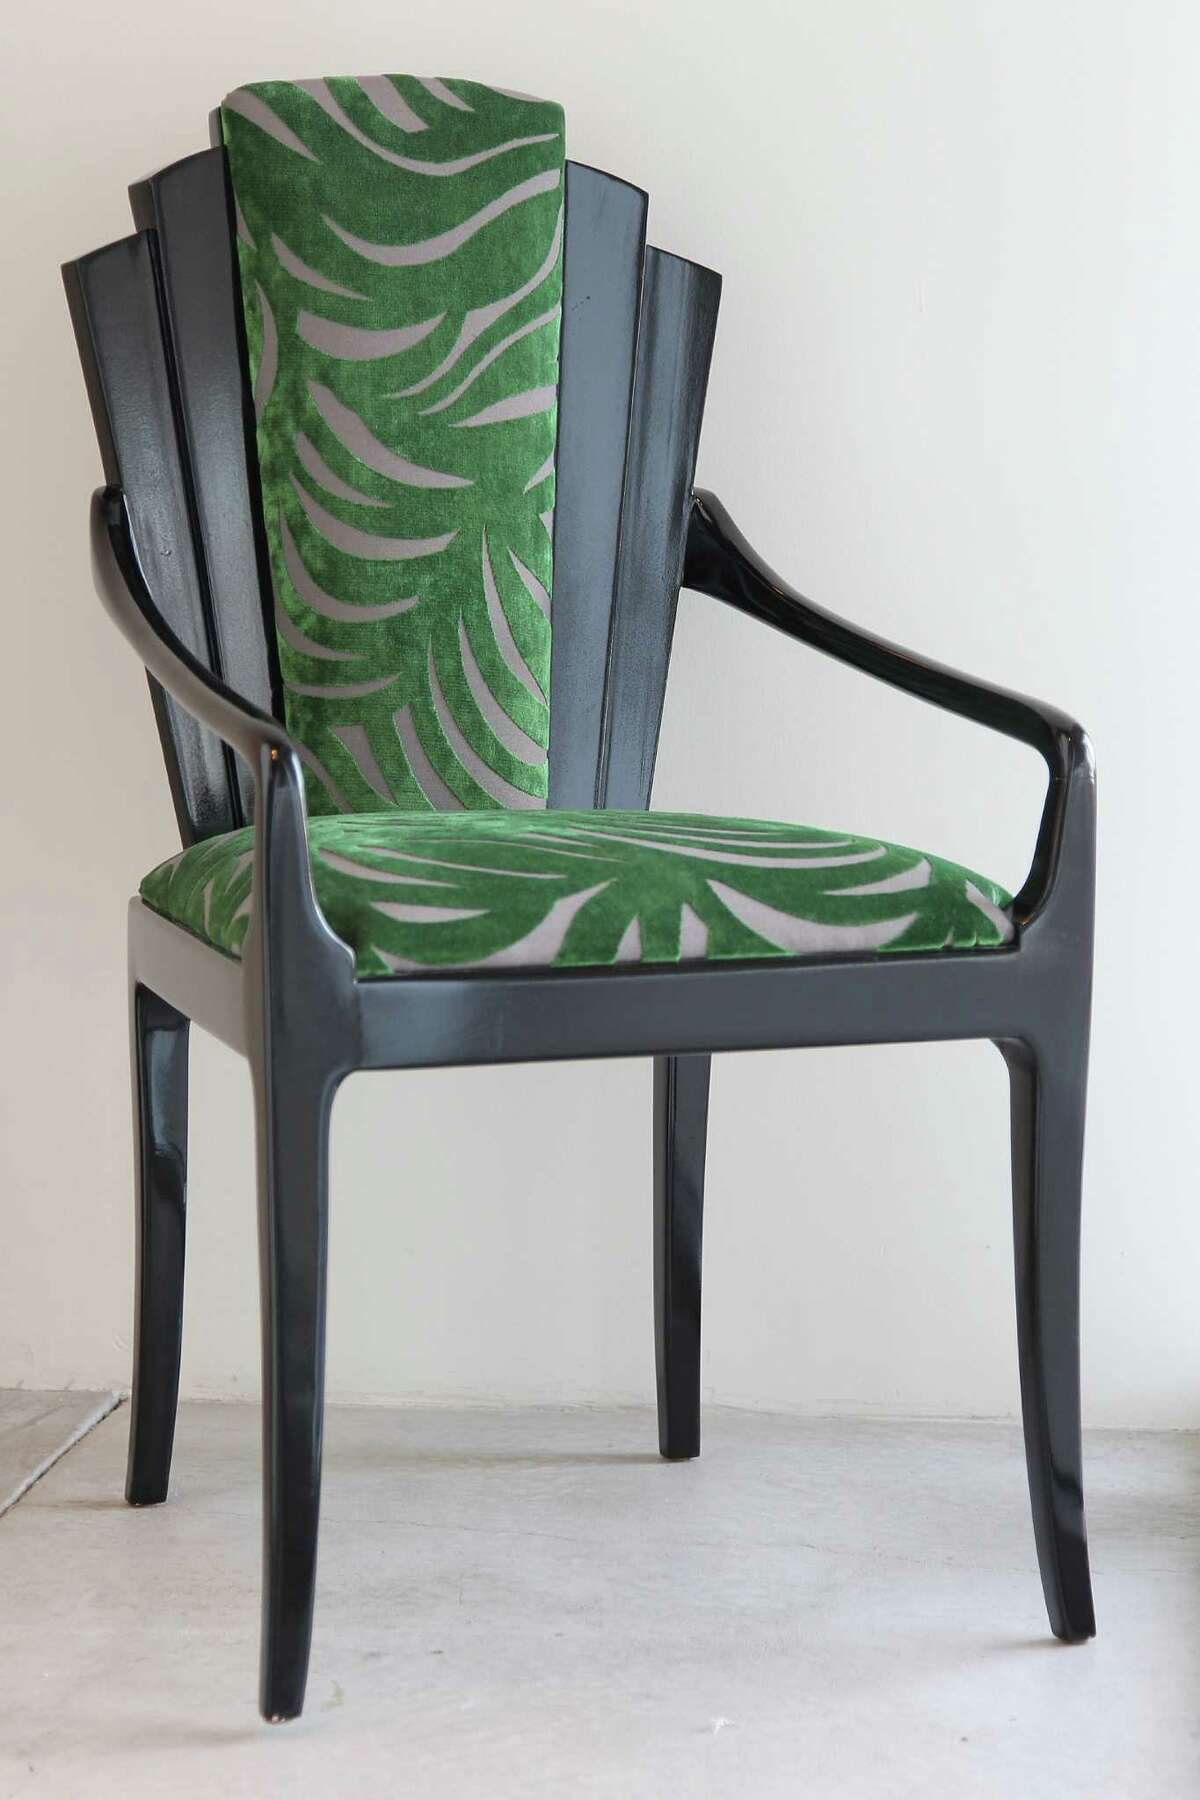 A Vladimir Kagan chair from the 1940s reupholstered in an emerald velvet fabric.